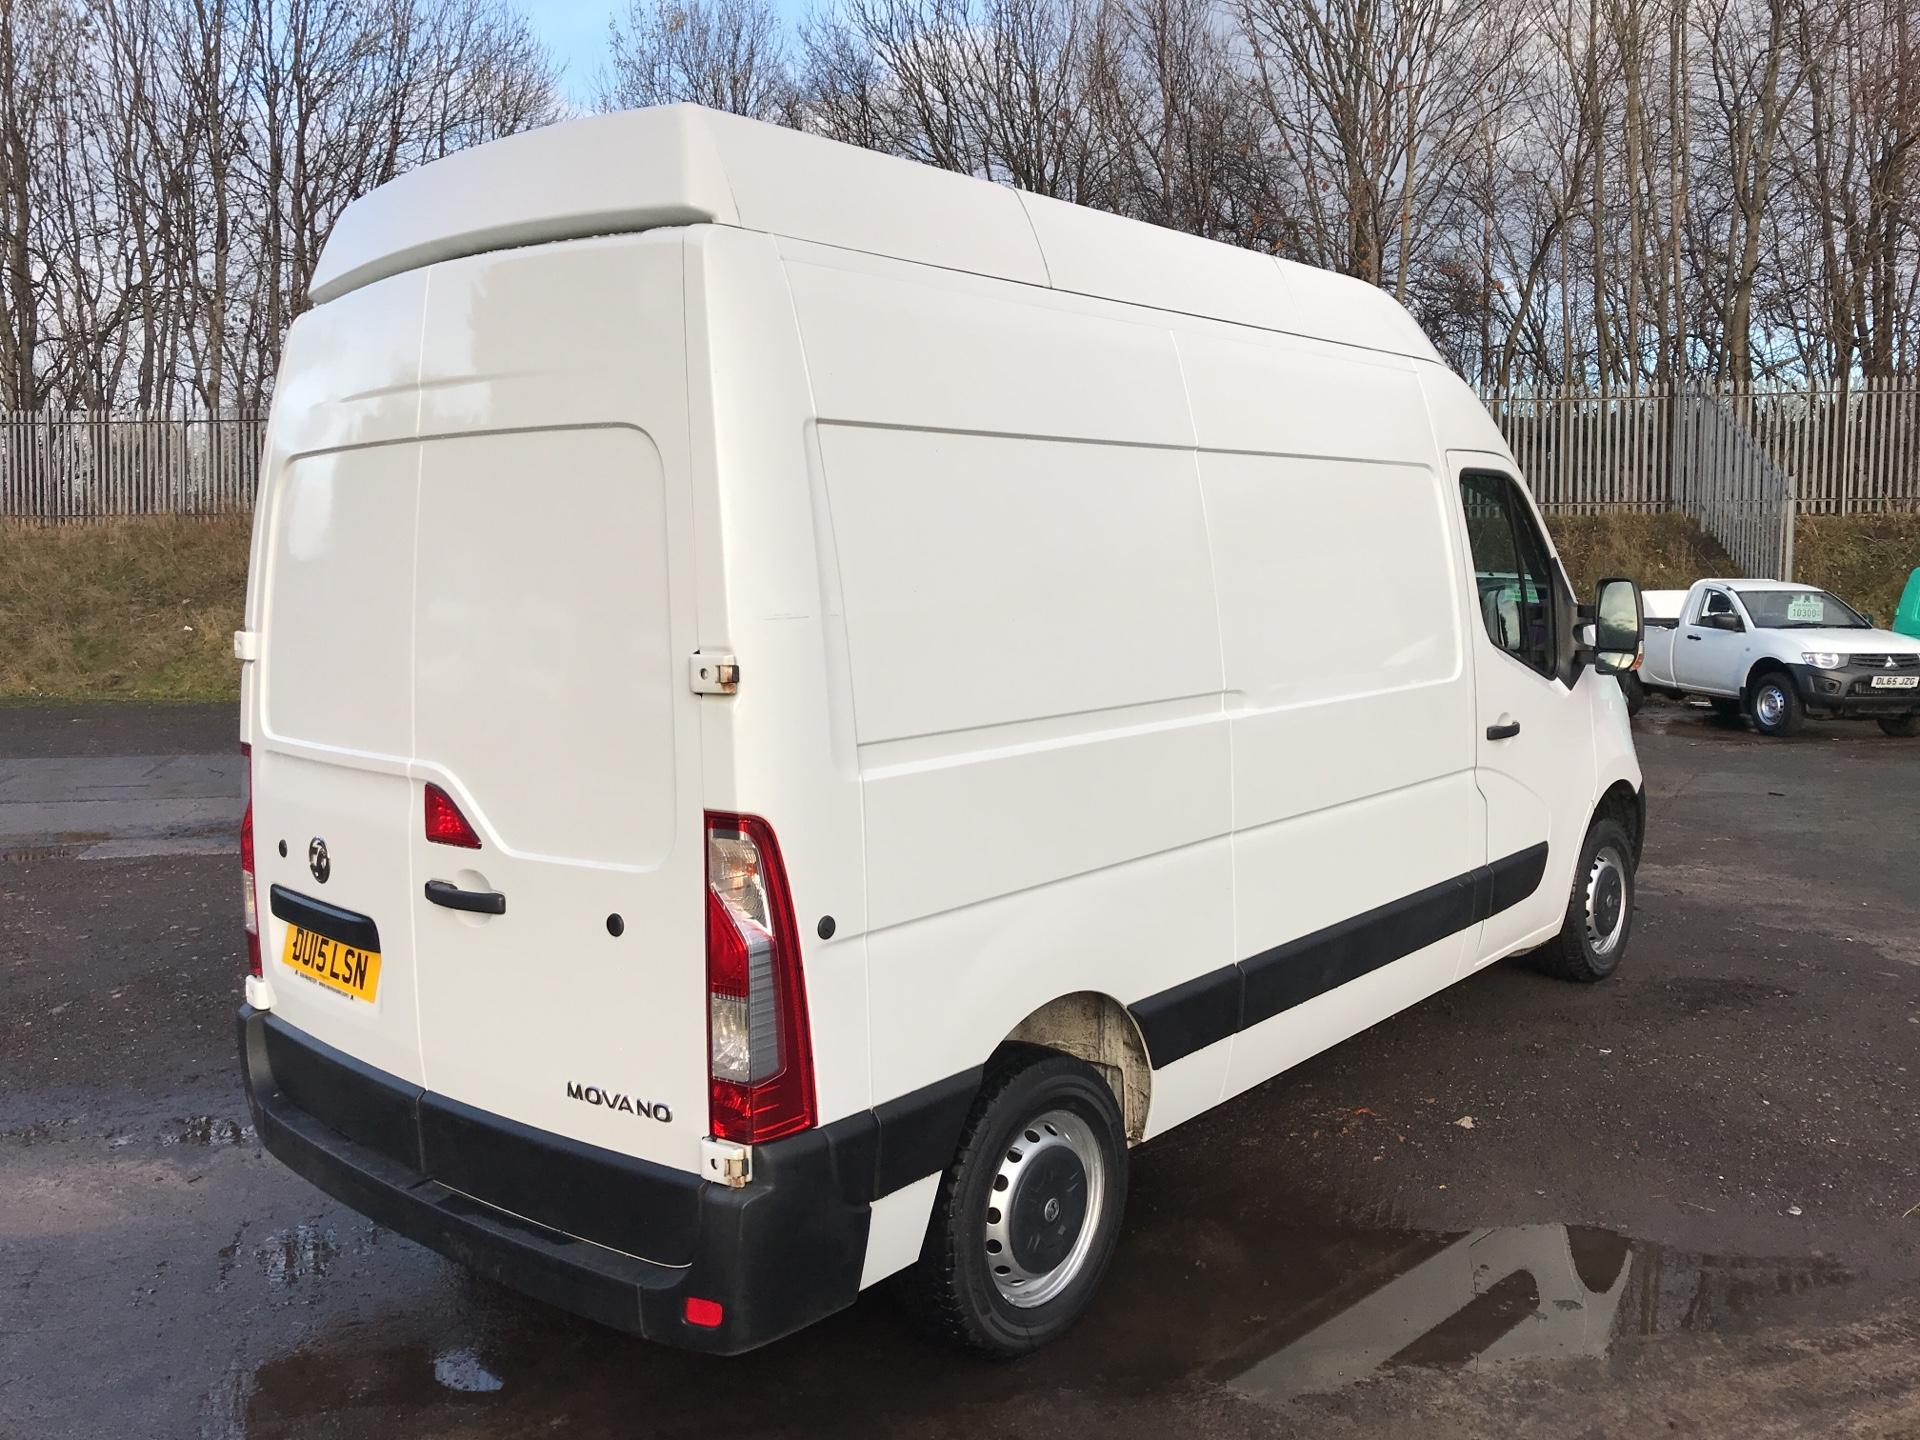 2015 Vauxhall Movano 35 L2 H3 2.3 TDCI 125PS EURO 5 (DU15LSN) Image 3